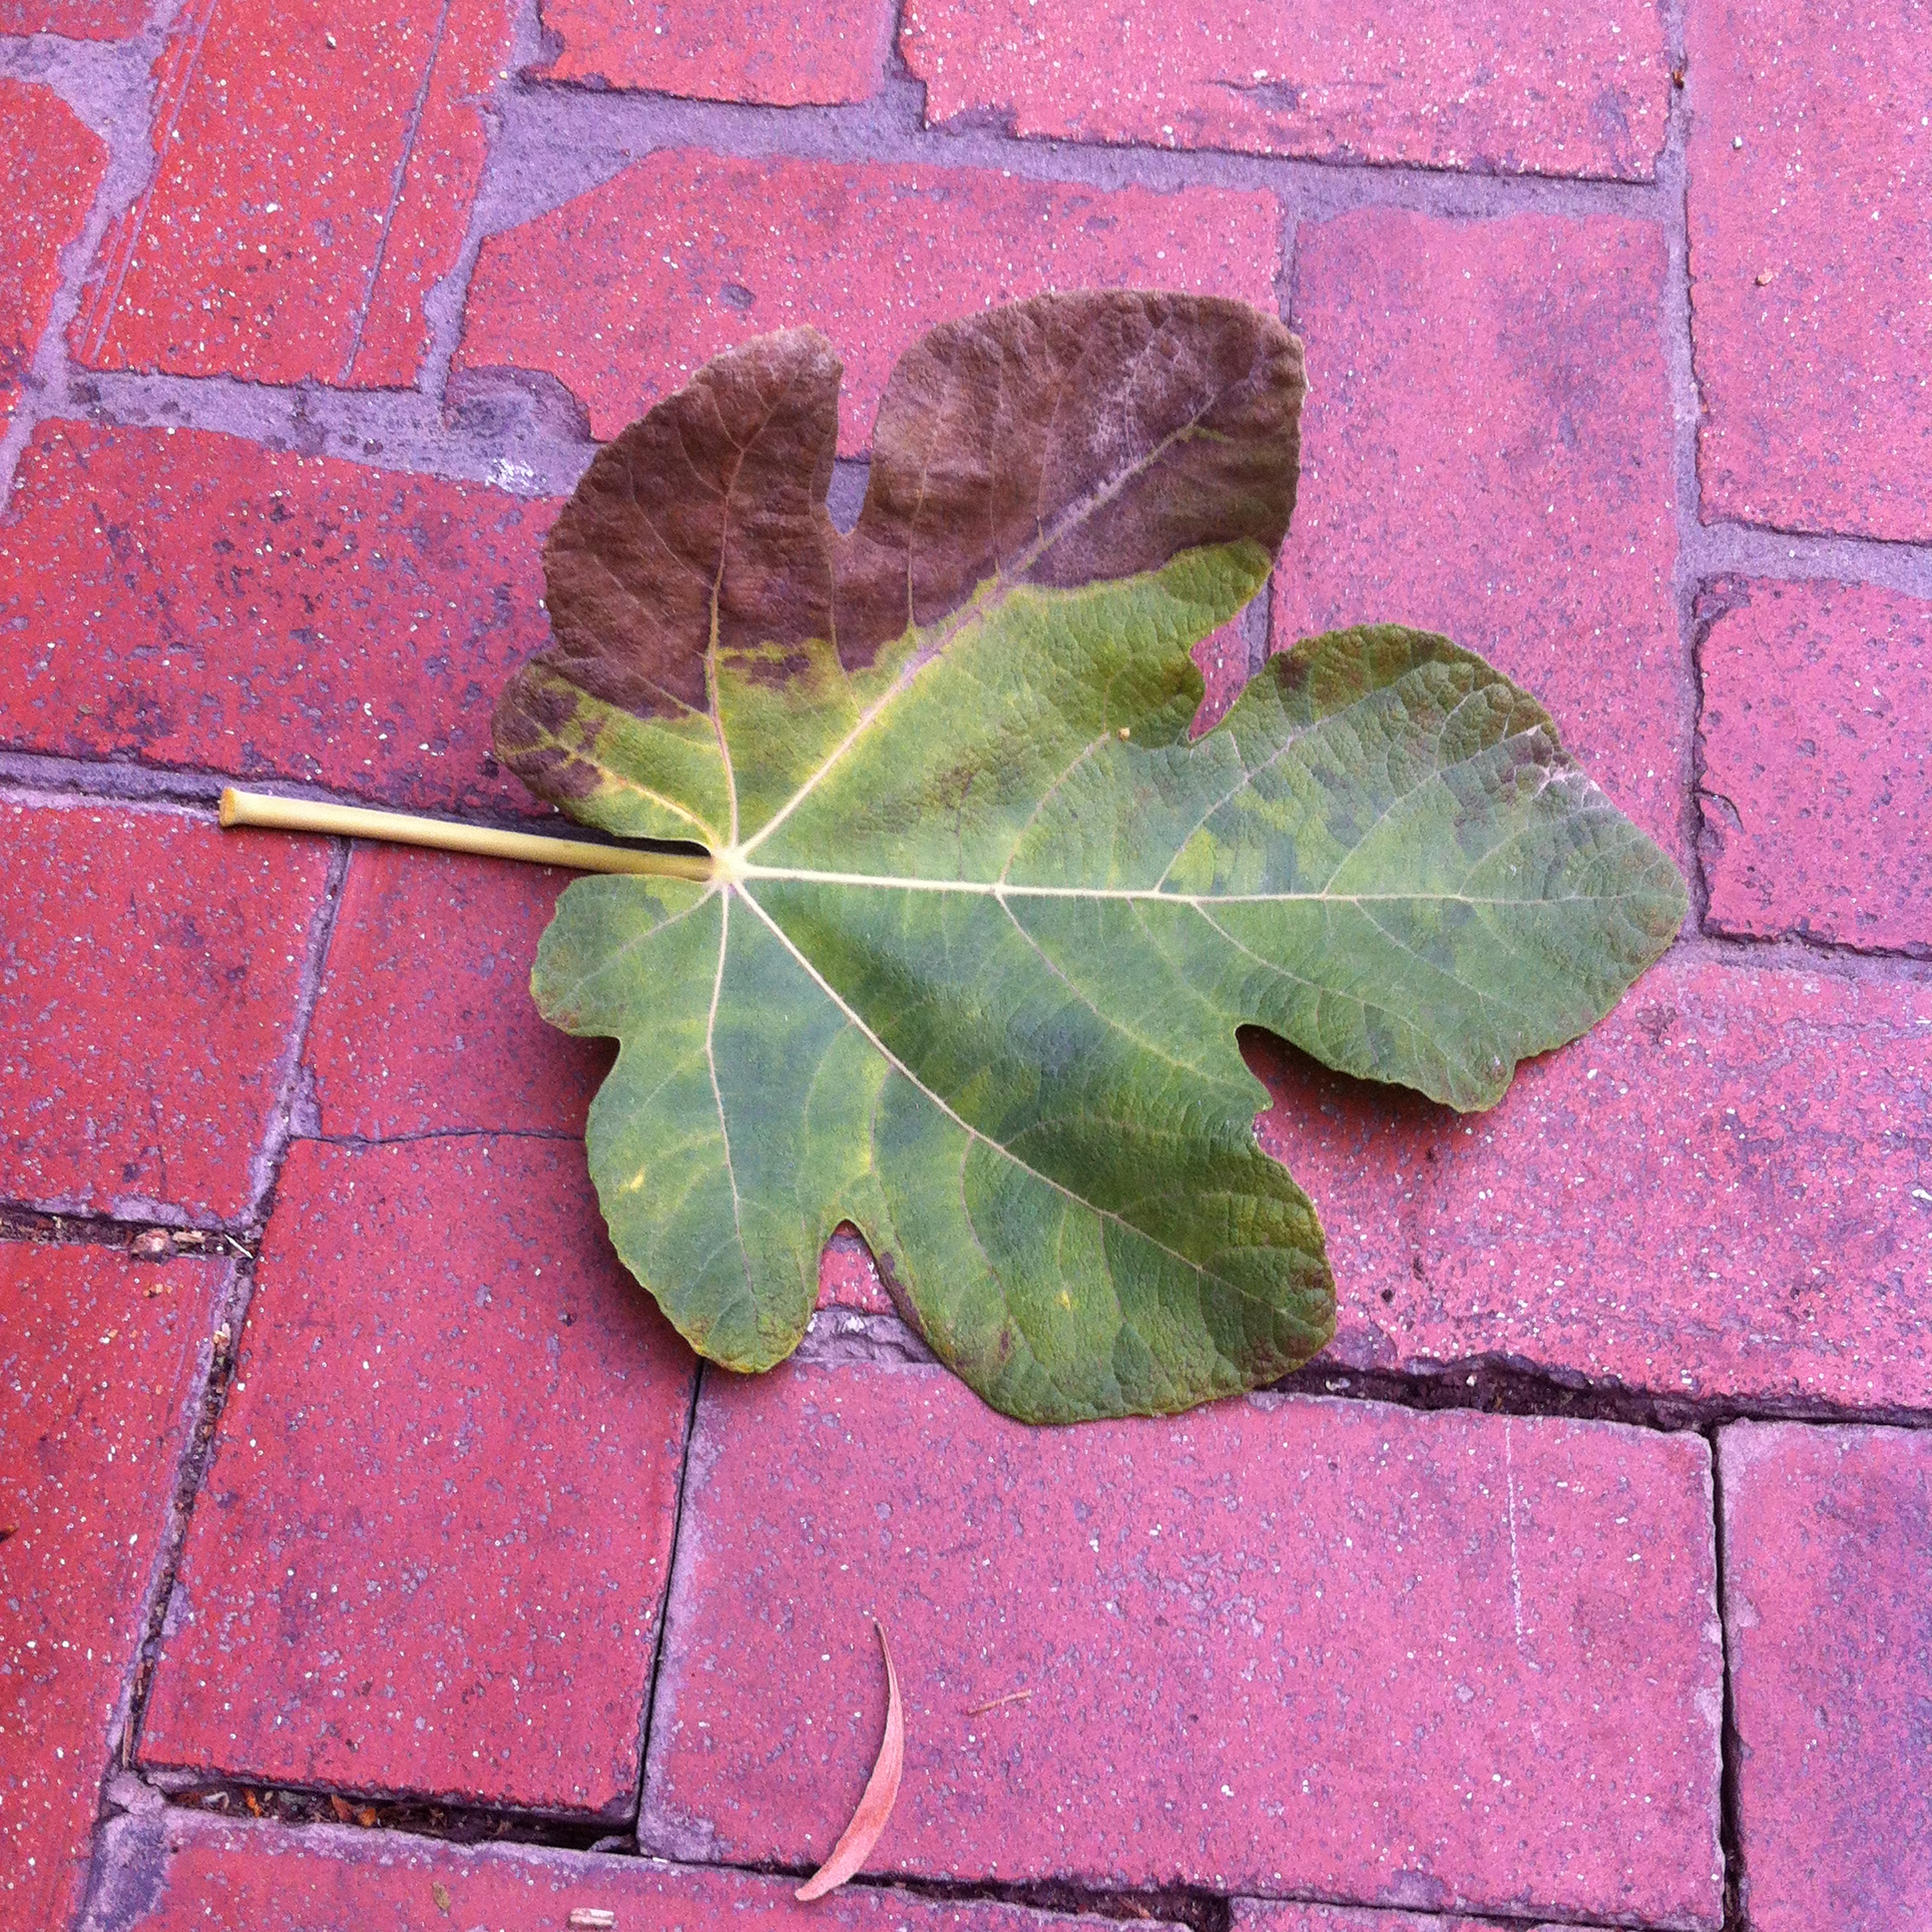 We smelled the smell of autumn on a fallen leaf